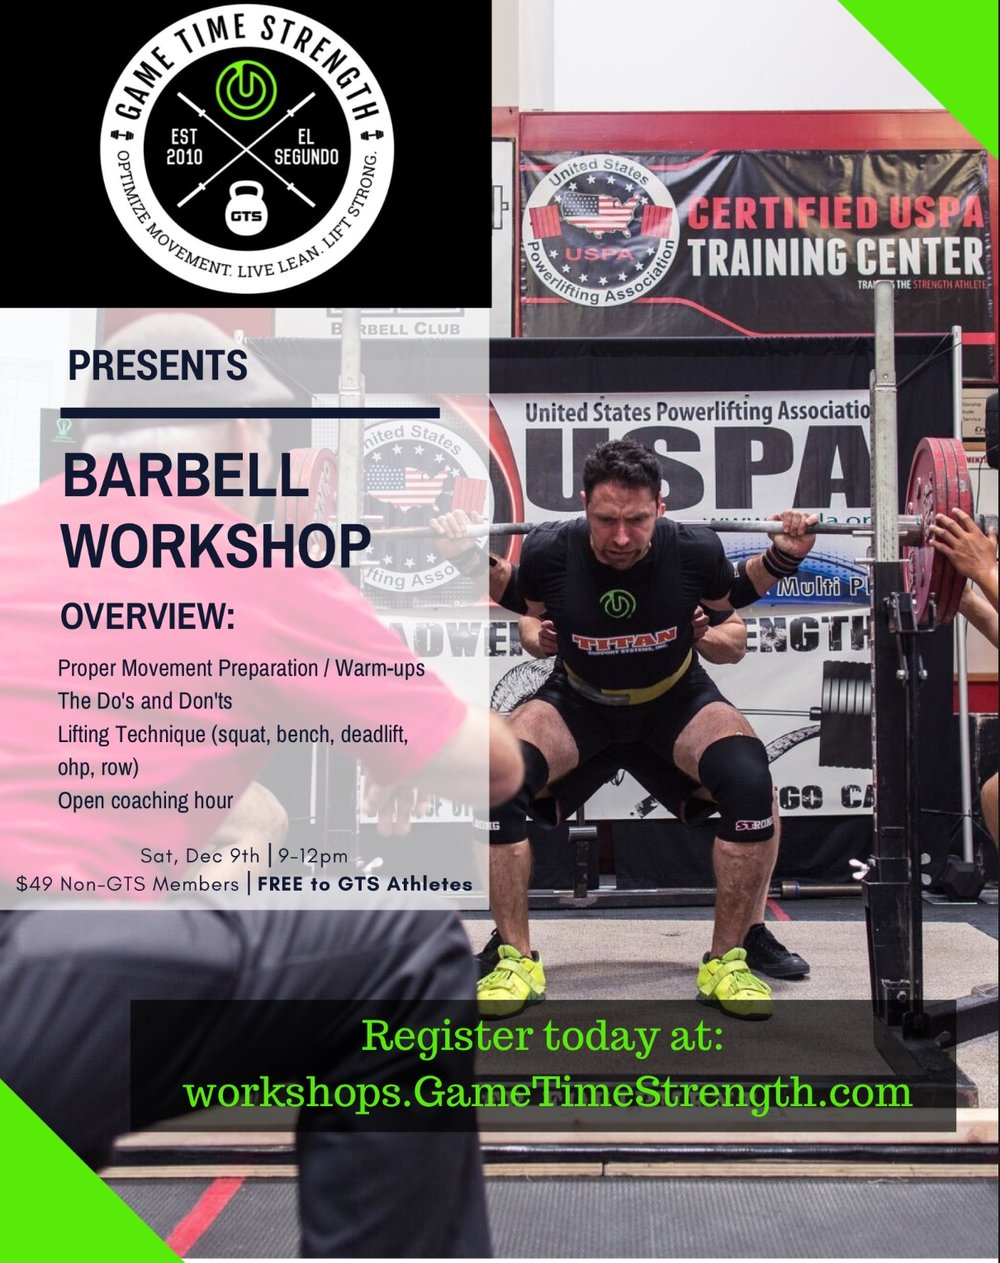 GTS Barbell Strength Workshop - El Segundo Los Angeles Squat Bench Deadlift Press form.jpg